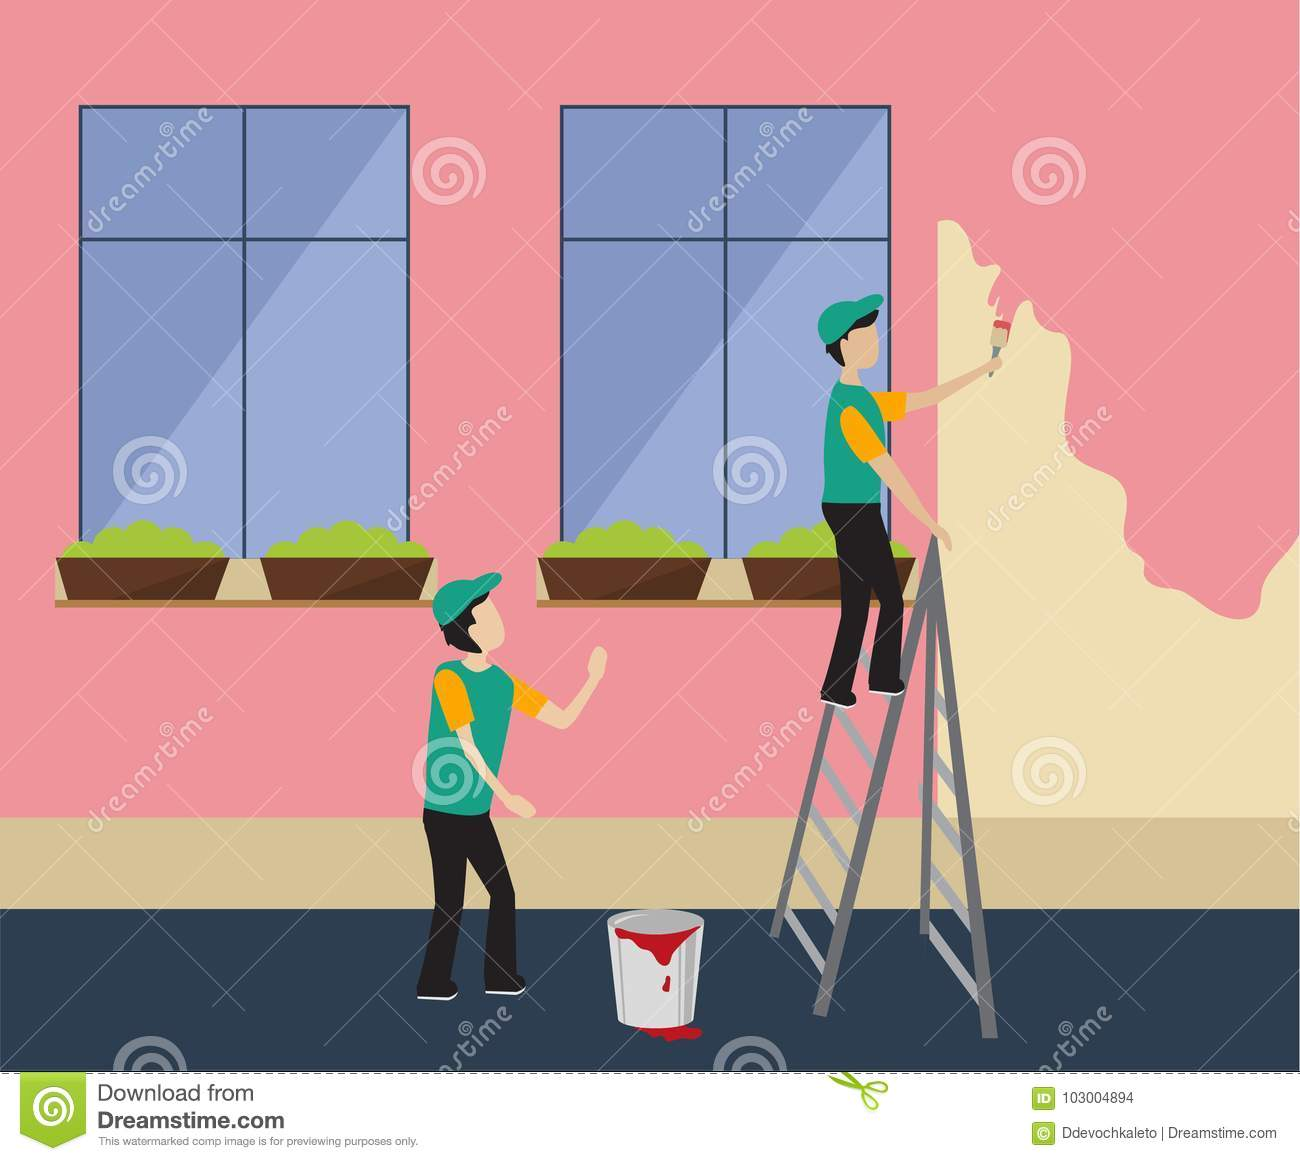 Workers Paint The Wall In Pink Stock Vector - Illustration of ...